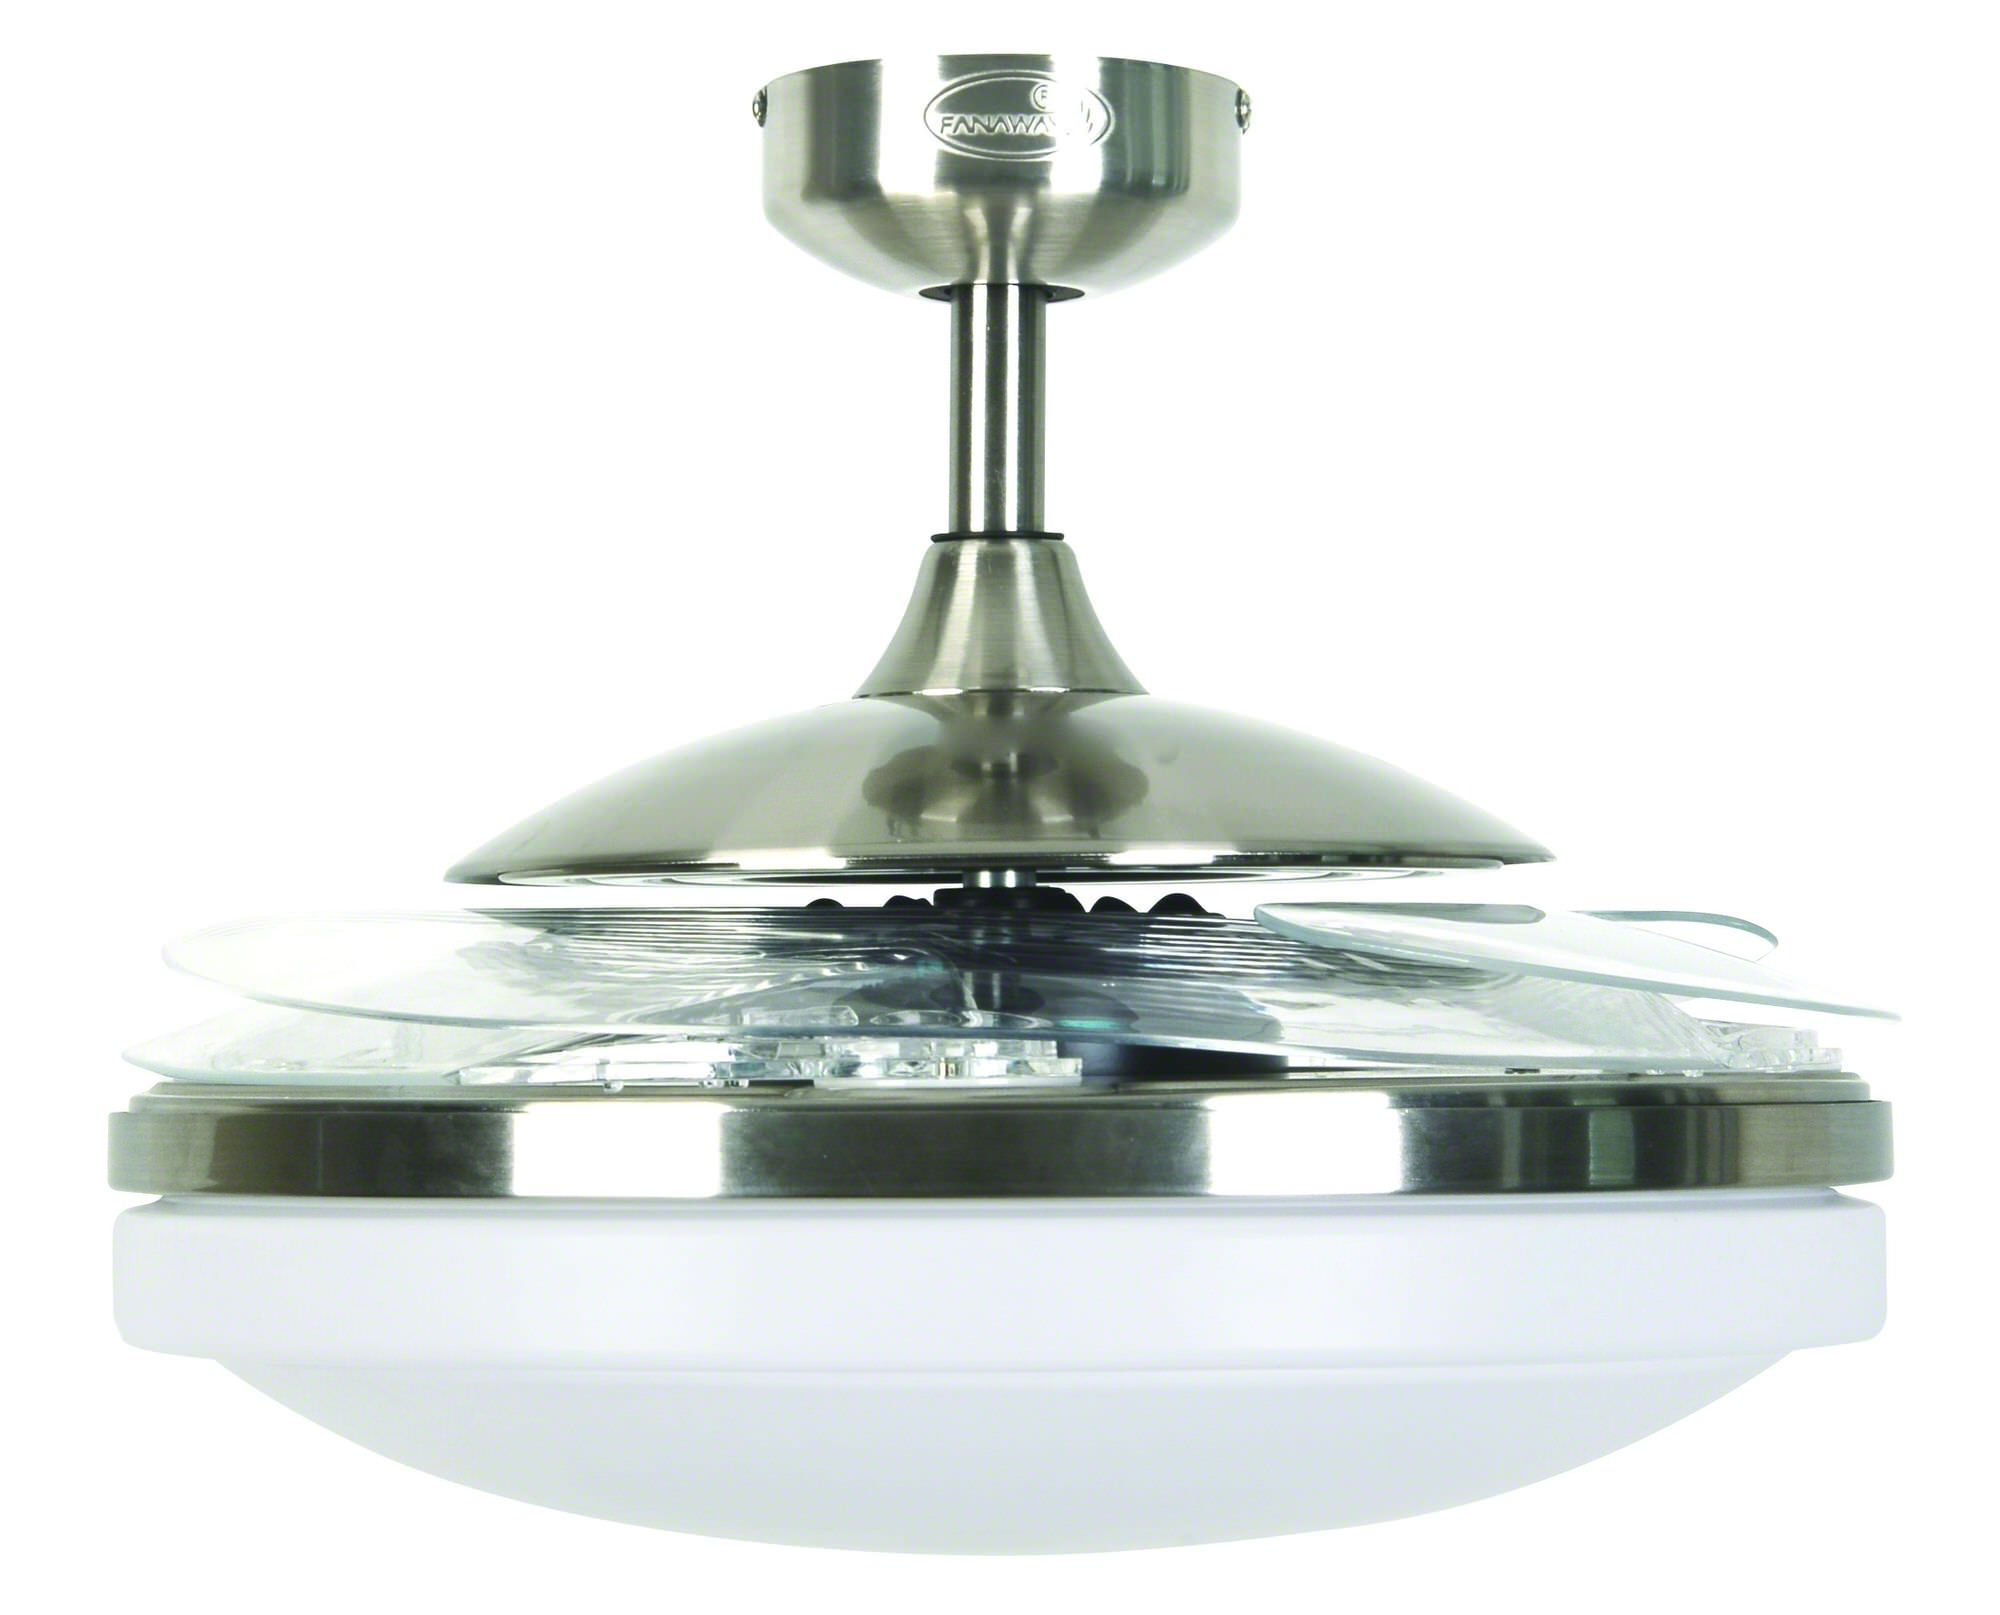 control and fans x luxurious body org remote b ceiling lights q with blades three boatylicious stainless fan retractable steel